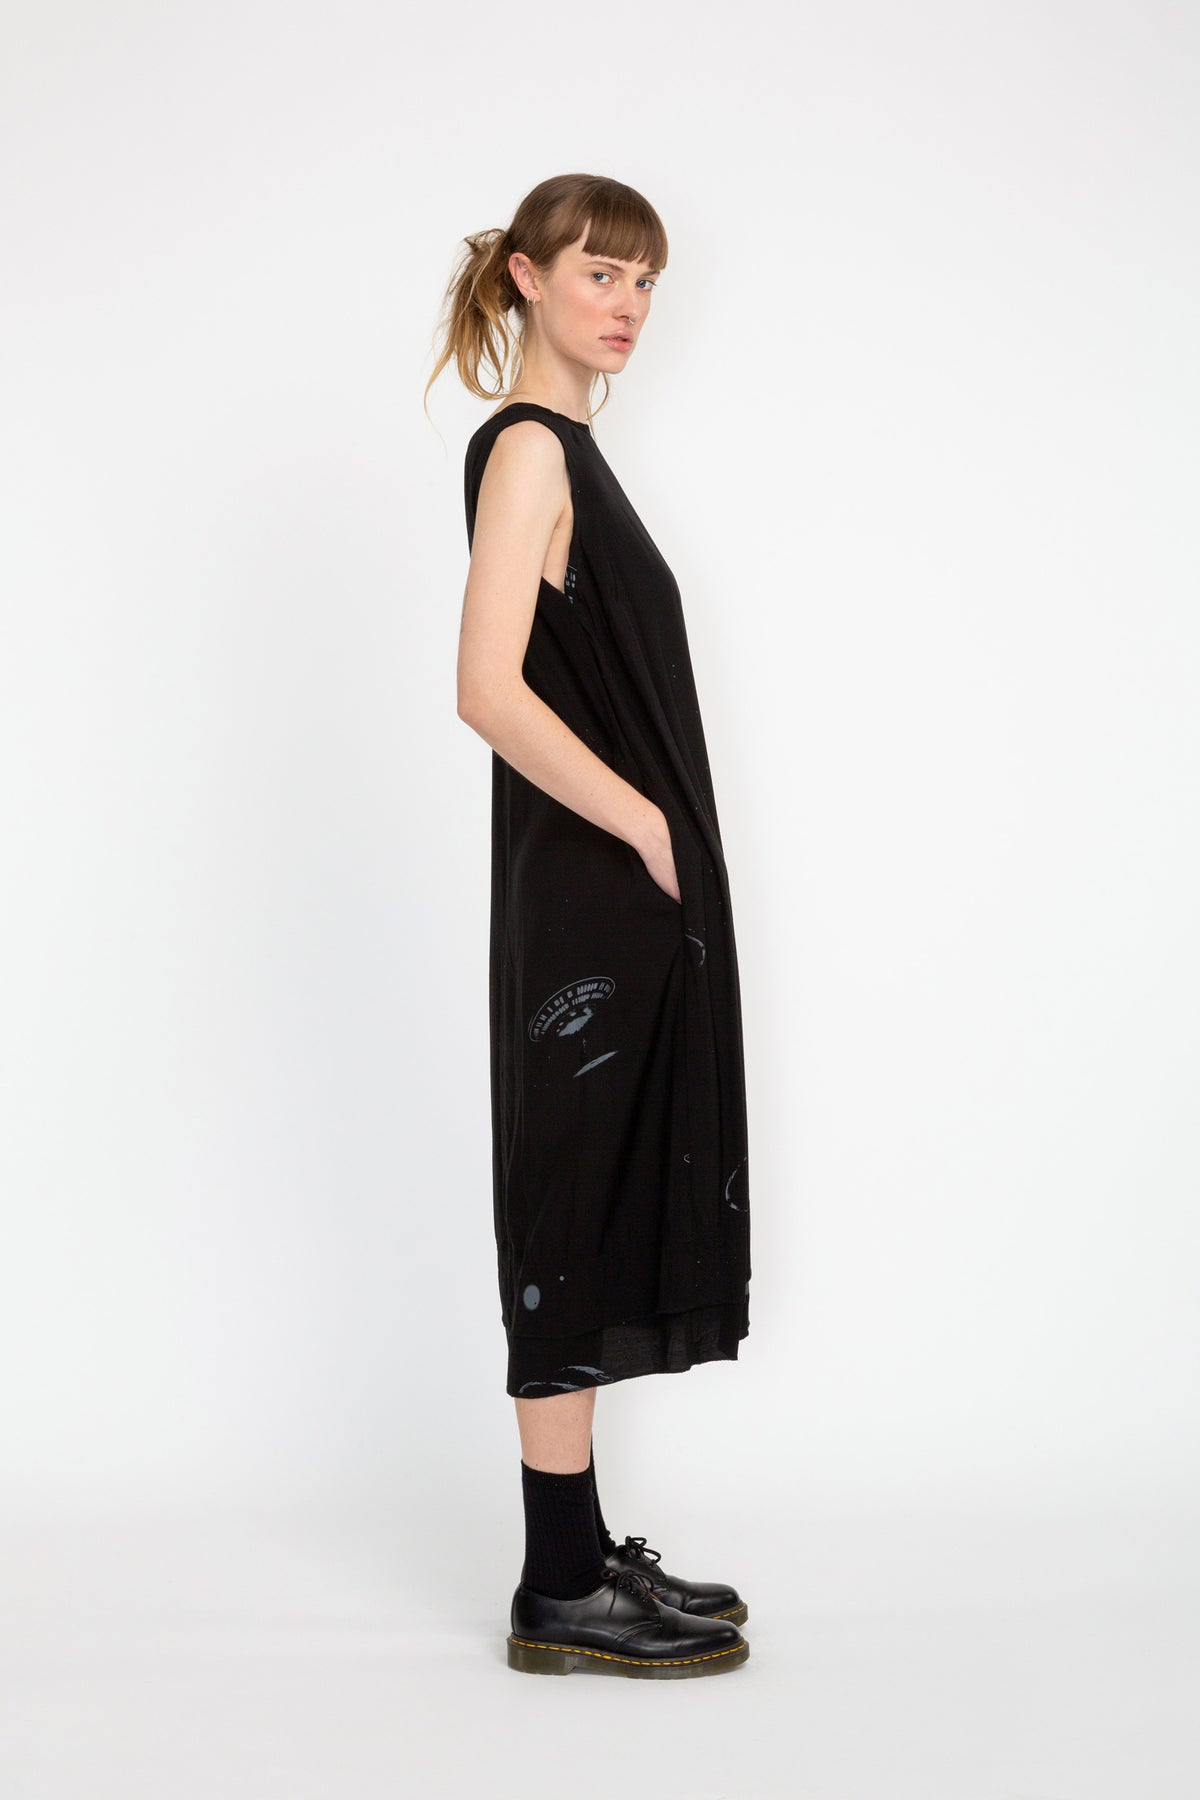 nom*d crater slip dress shop online auckland stockists dunedin fashion made in new zealand nz designer clothing parnell